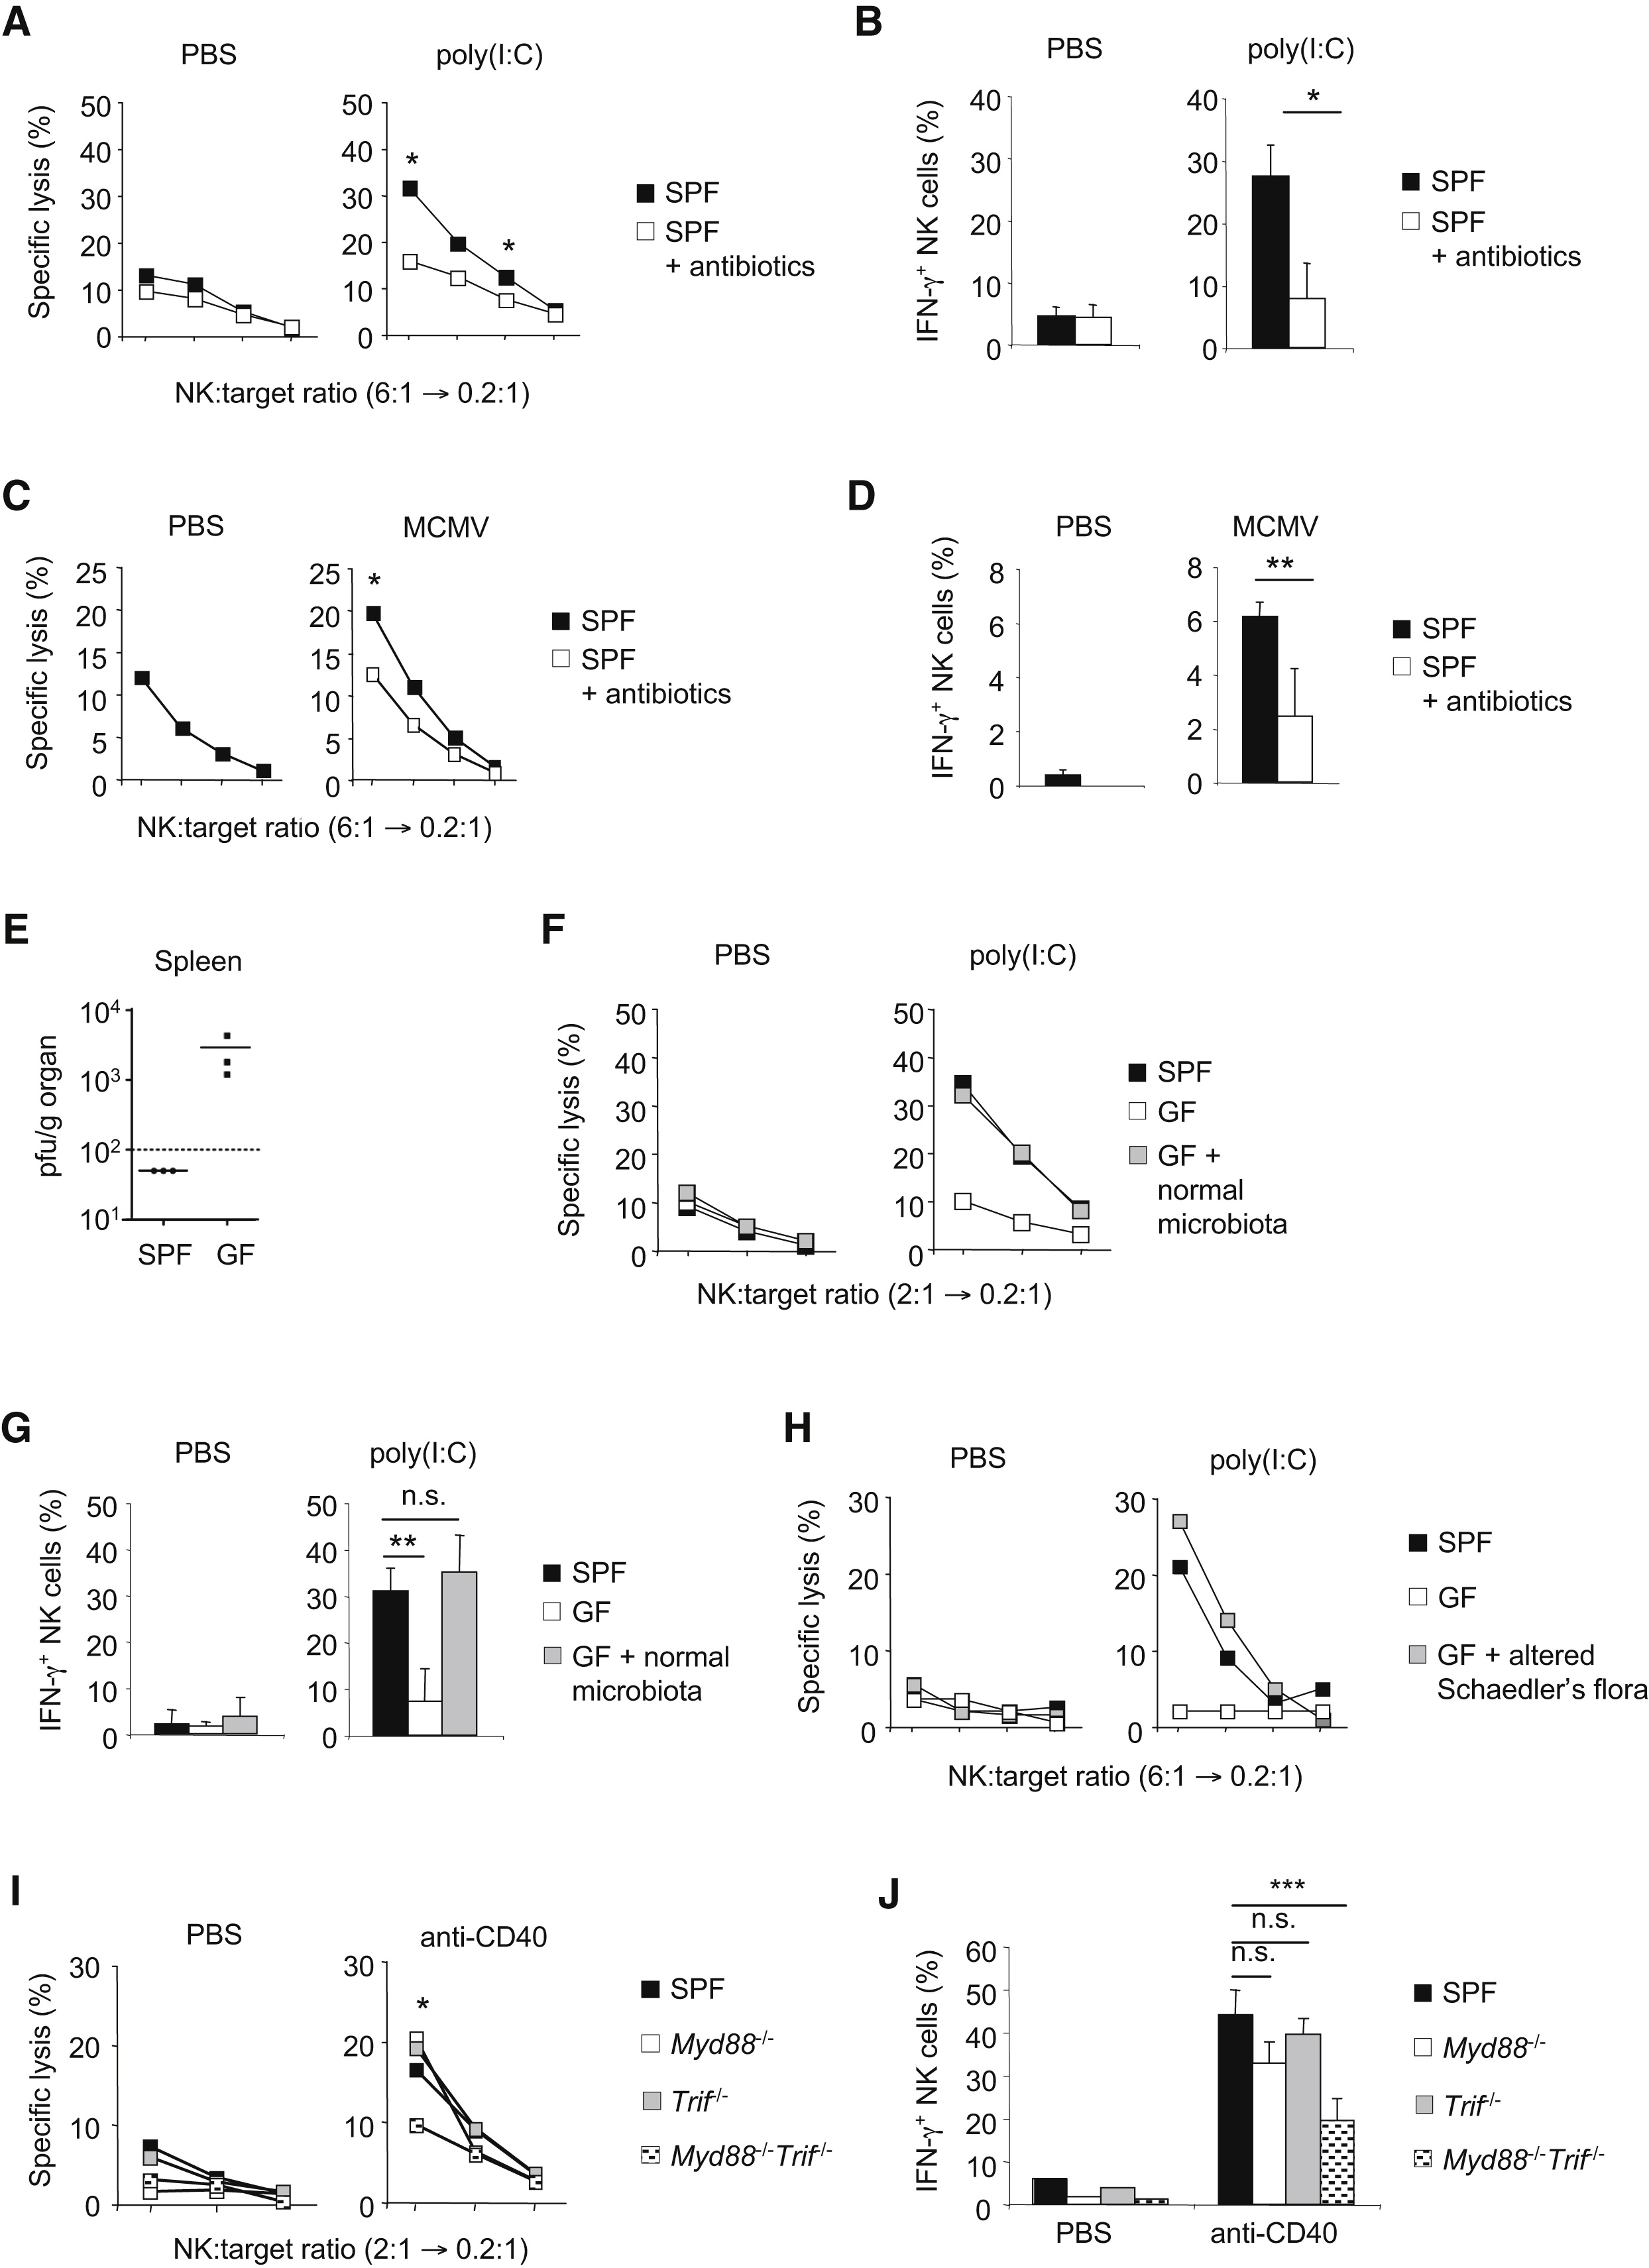 Priming Of Natural Killer Cells By Nonmucosal Mononuclear Phagocytes Requires Instructive